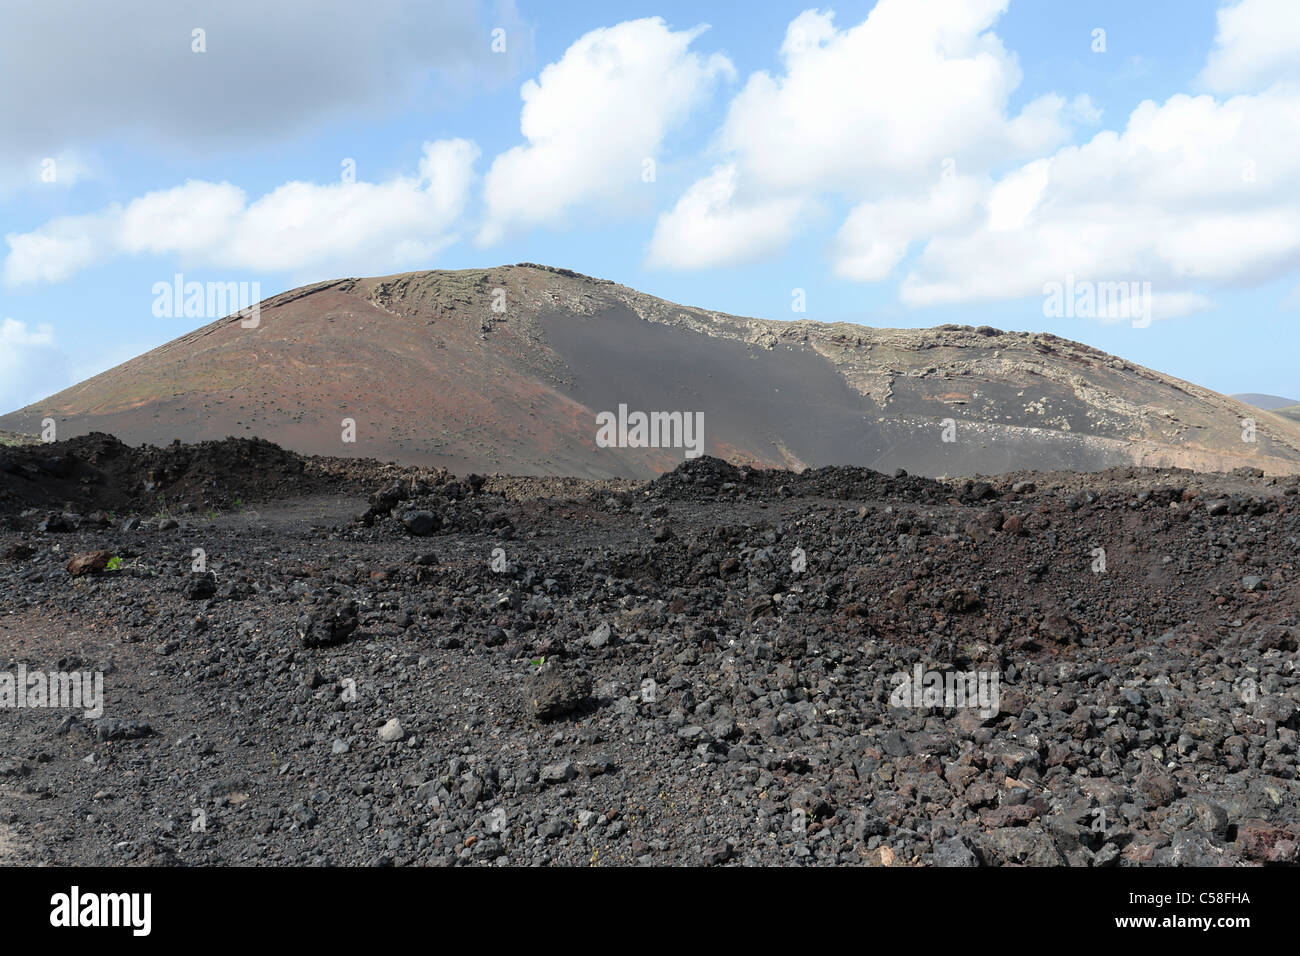 Spain, Lanzarote, Montana Colorada, lava bombs, lava field, mountains, scenery, rock, cliff, spectacle of nature, - Stock Image